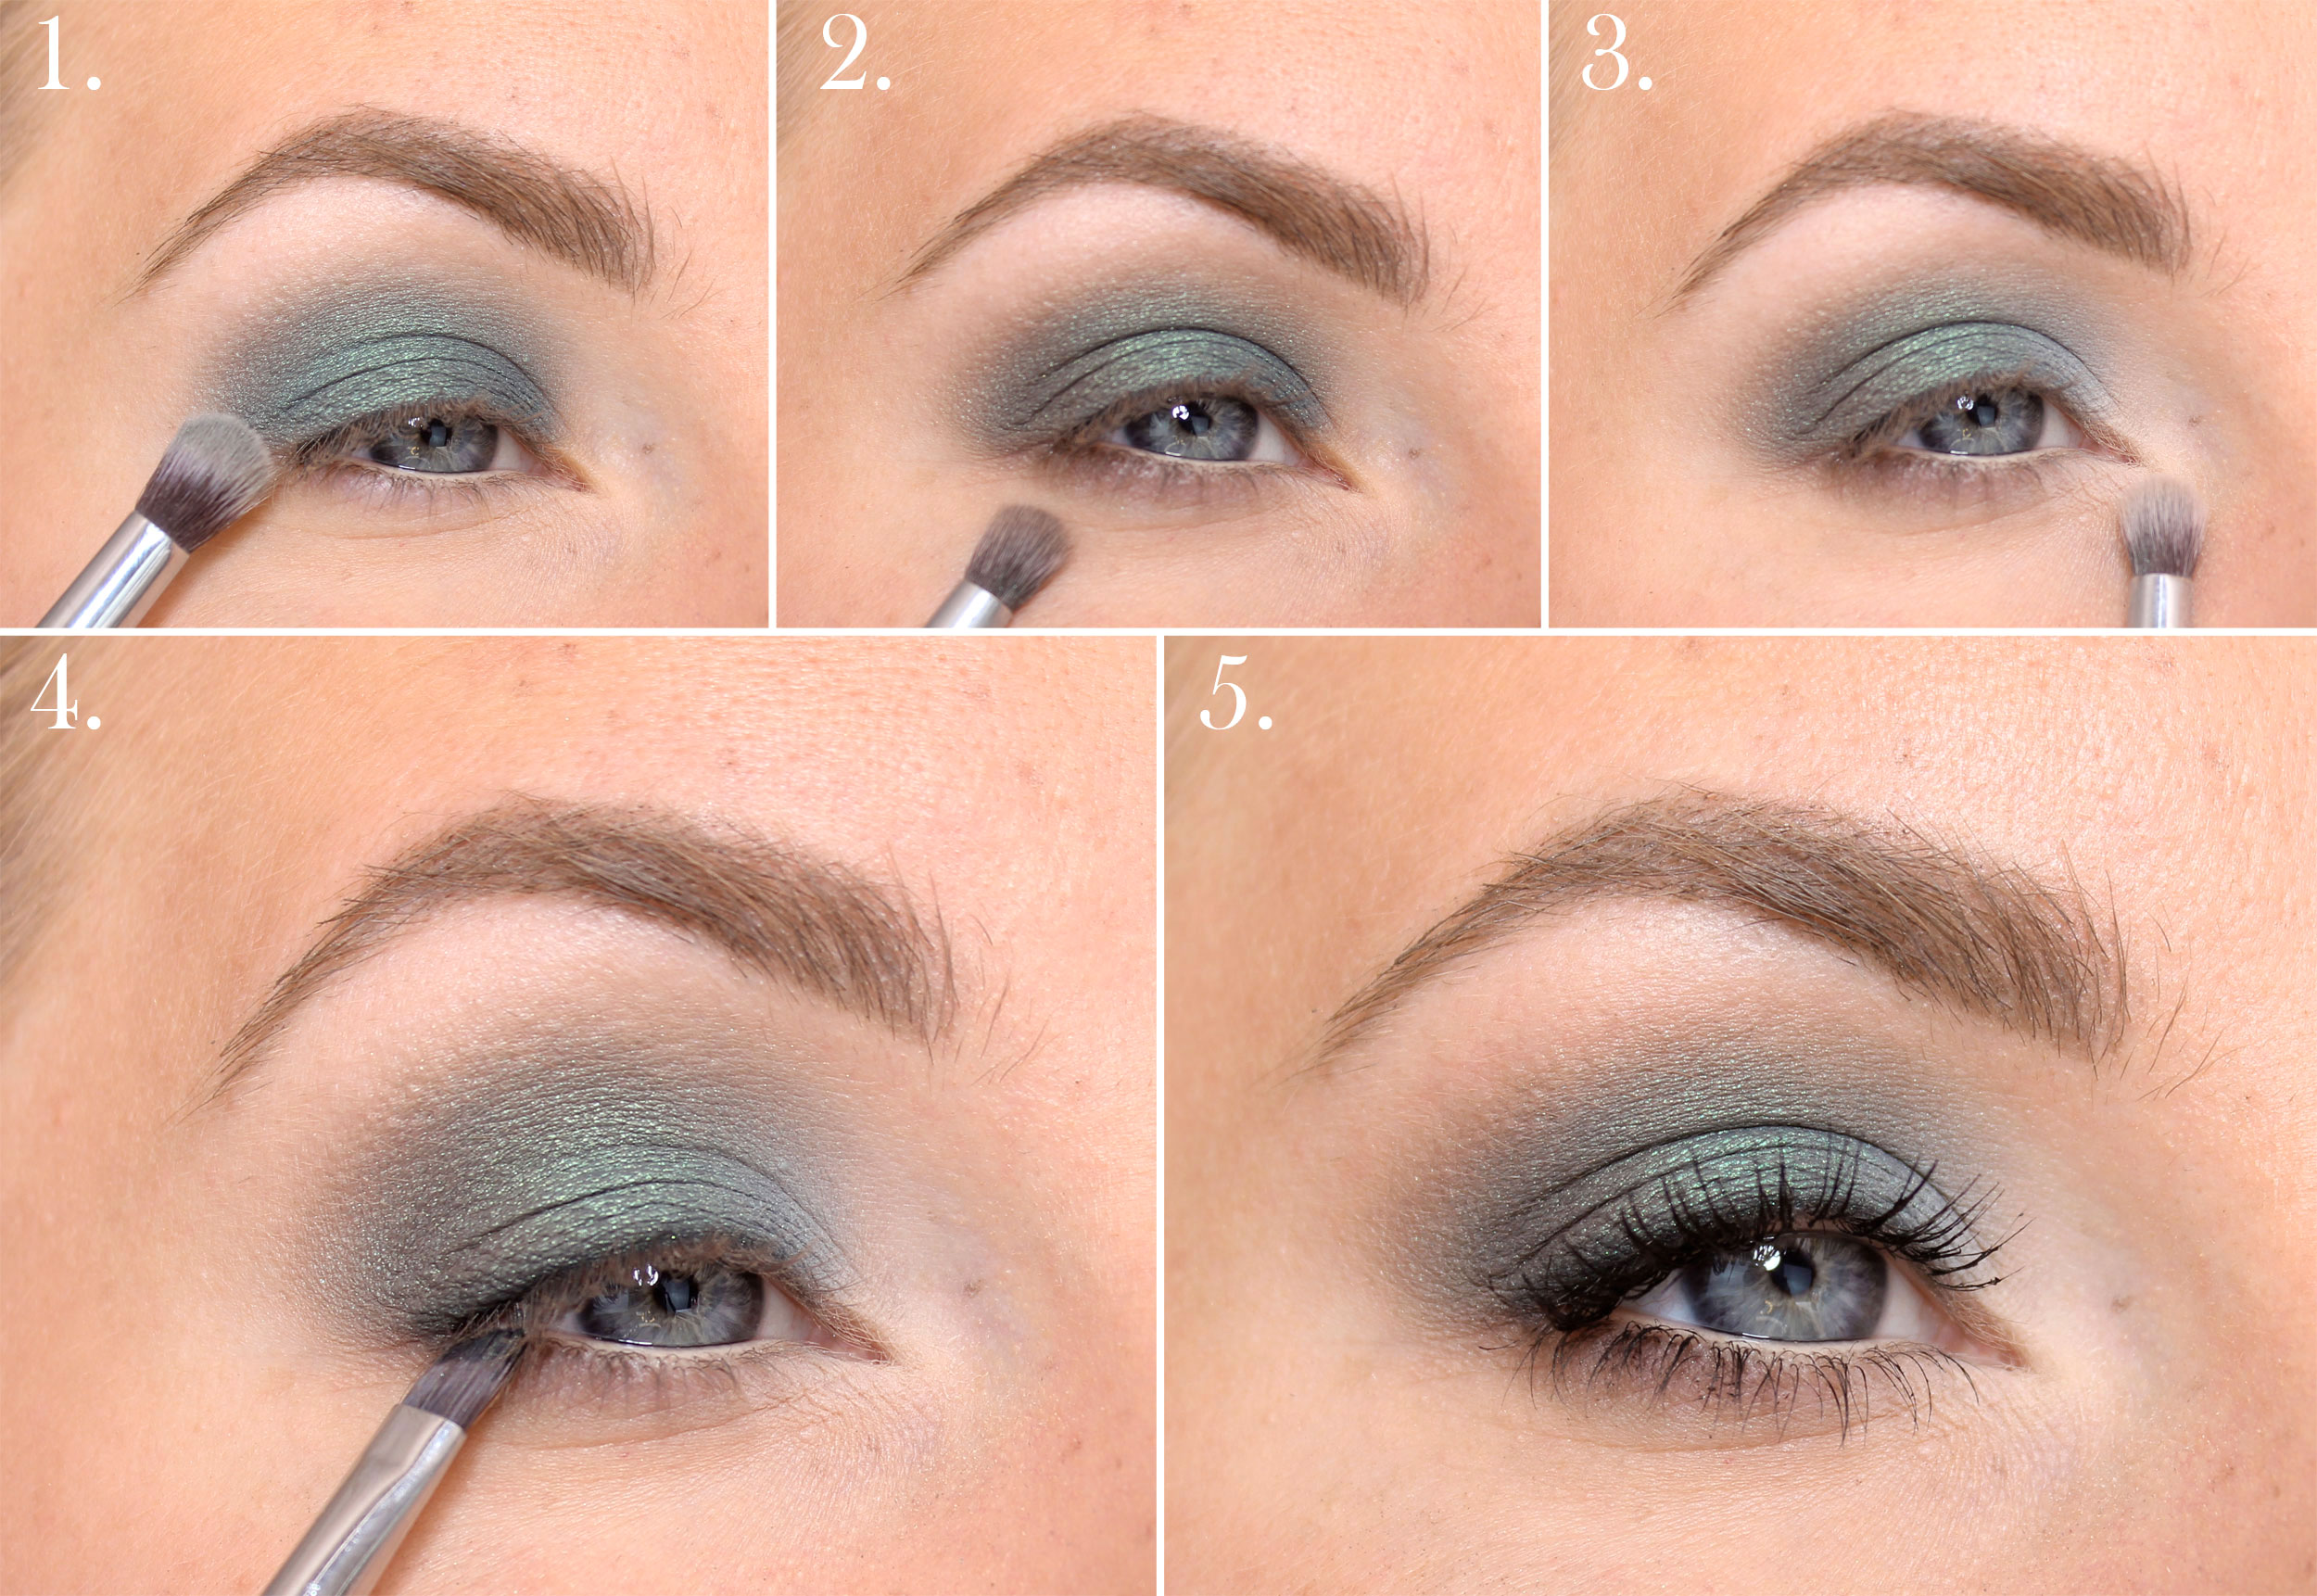 make-up with green eye shadow step by step